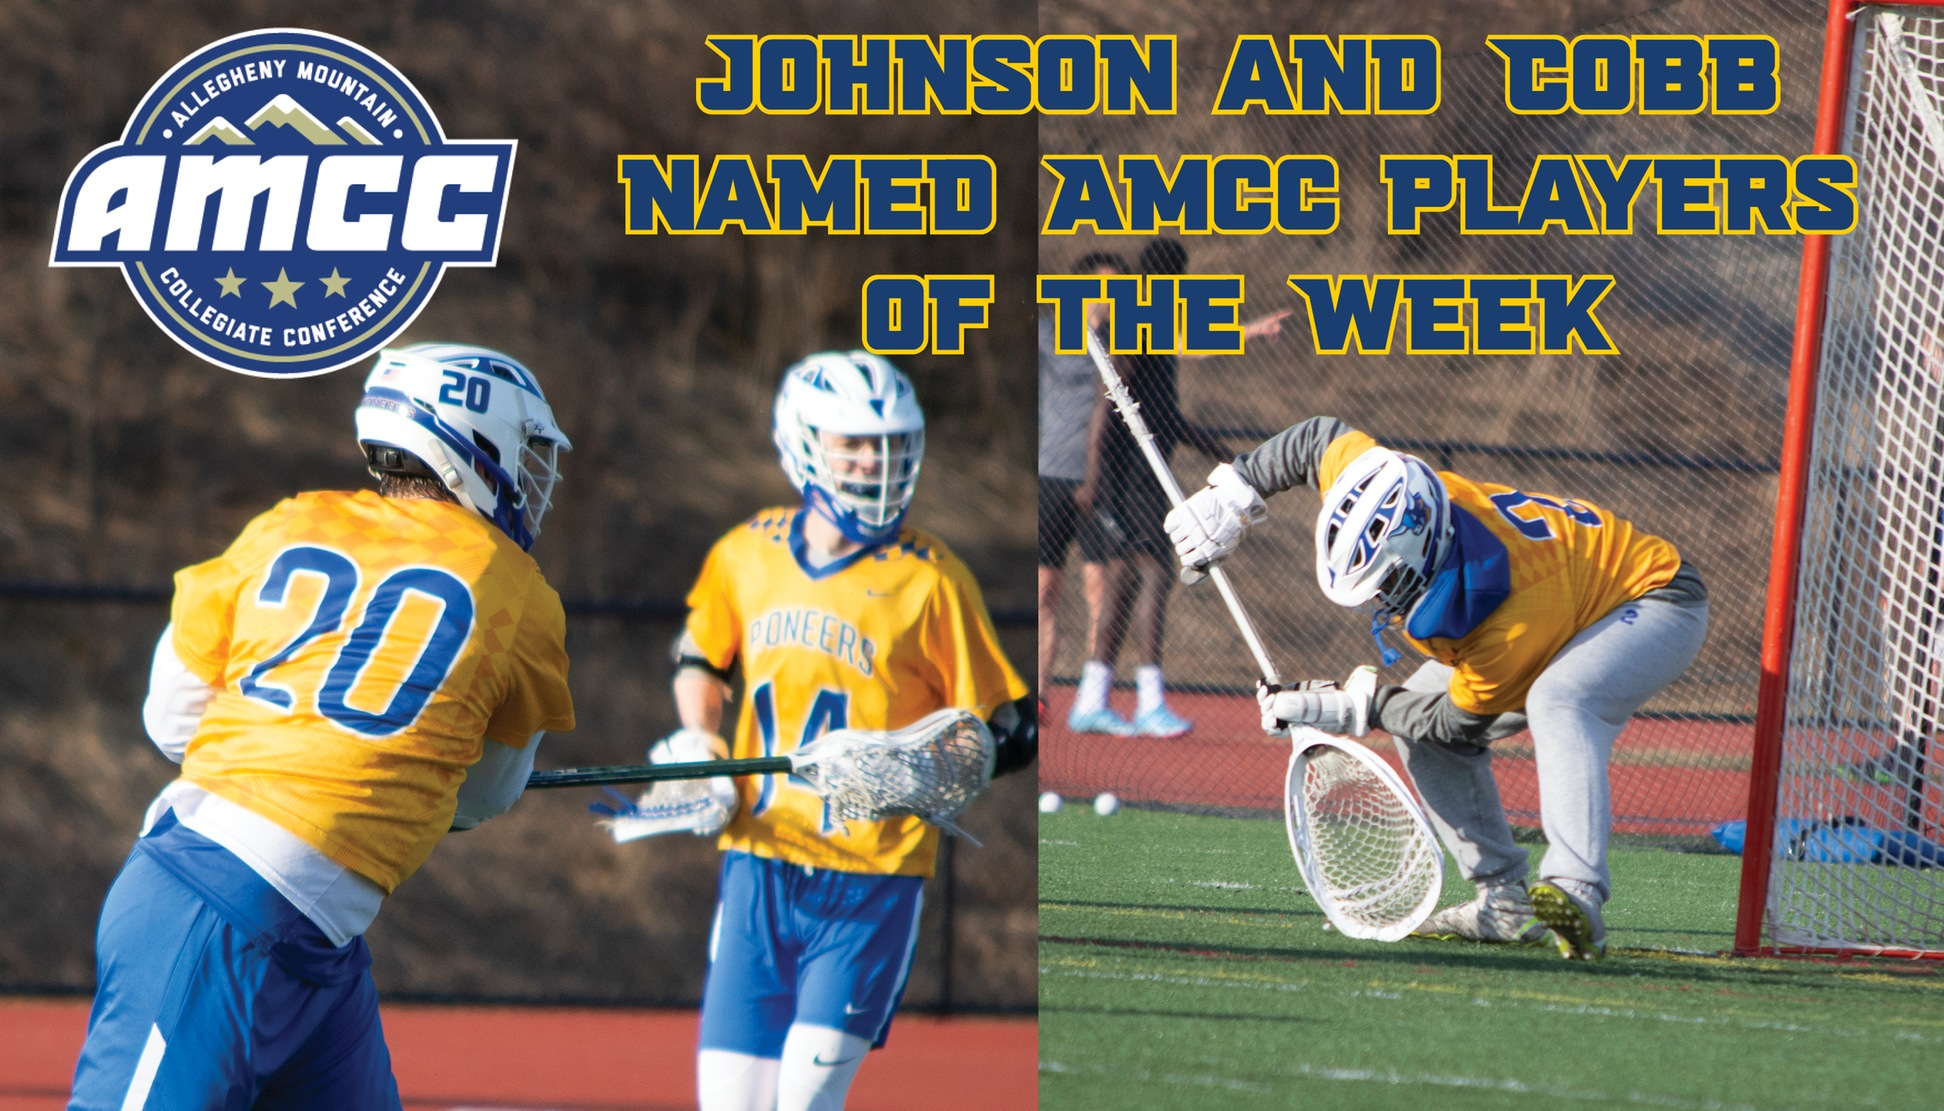 Joe Johnson and Matt Cobb Named AMCC Athletes of the Week